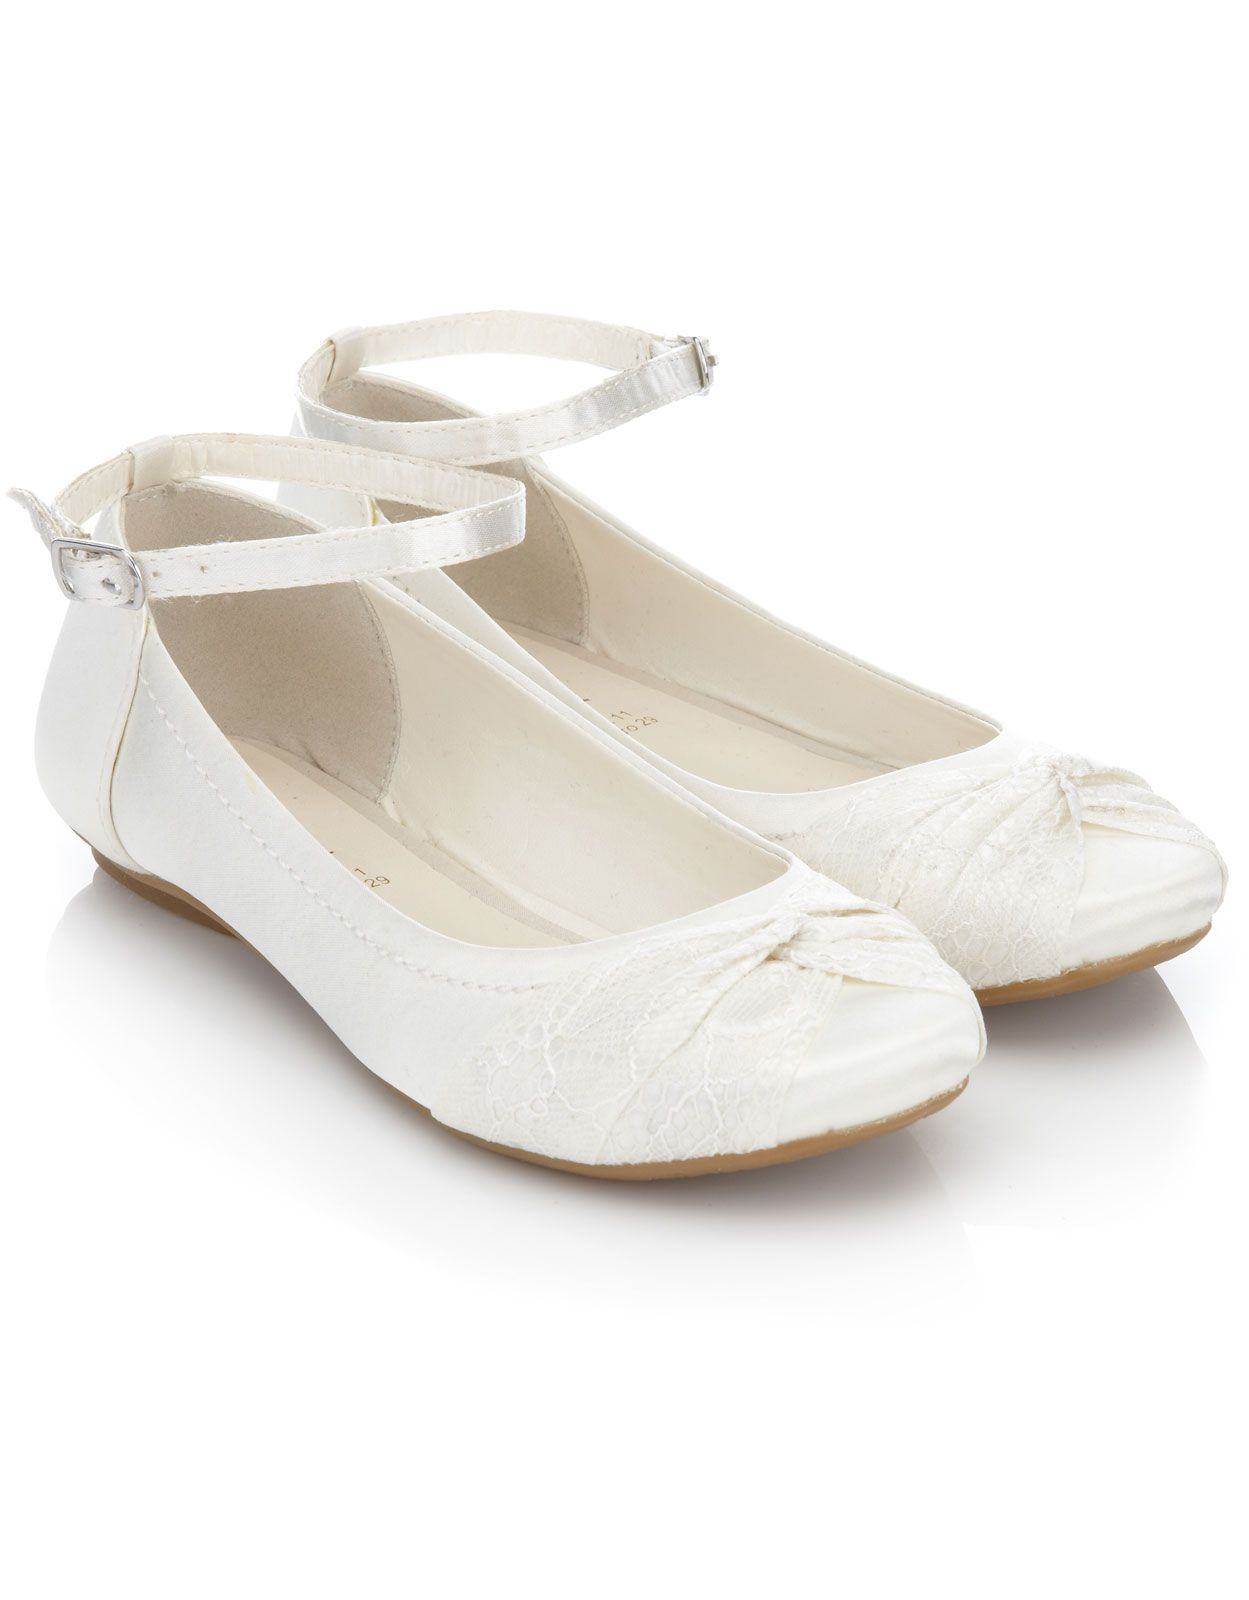 Flat Satin Shoes For Holy Communion Uk